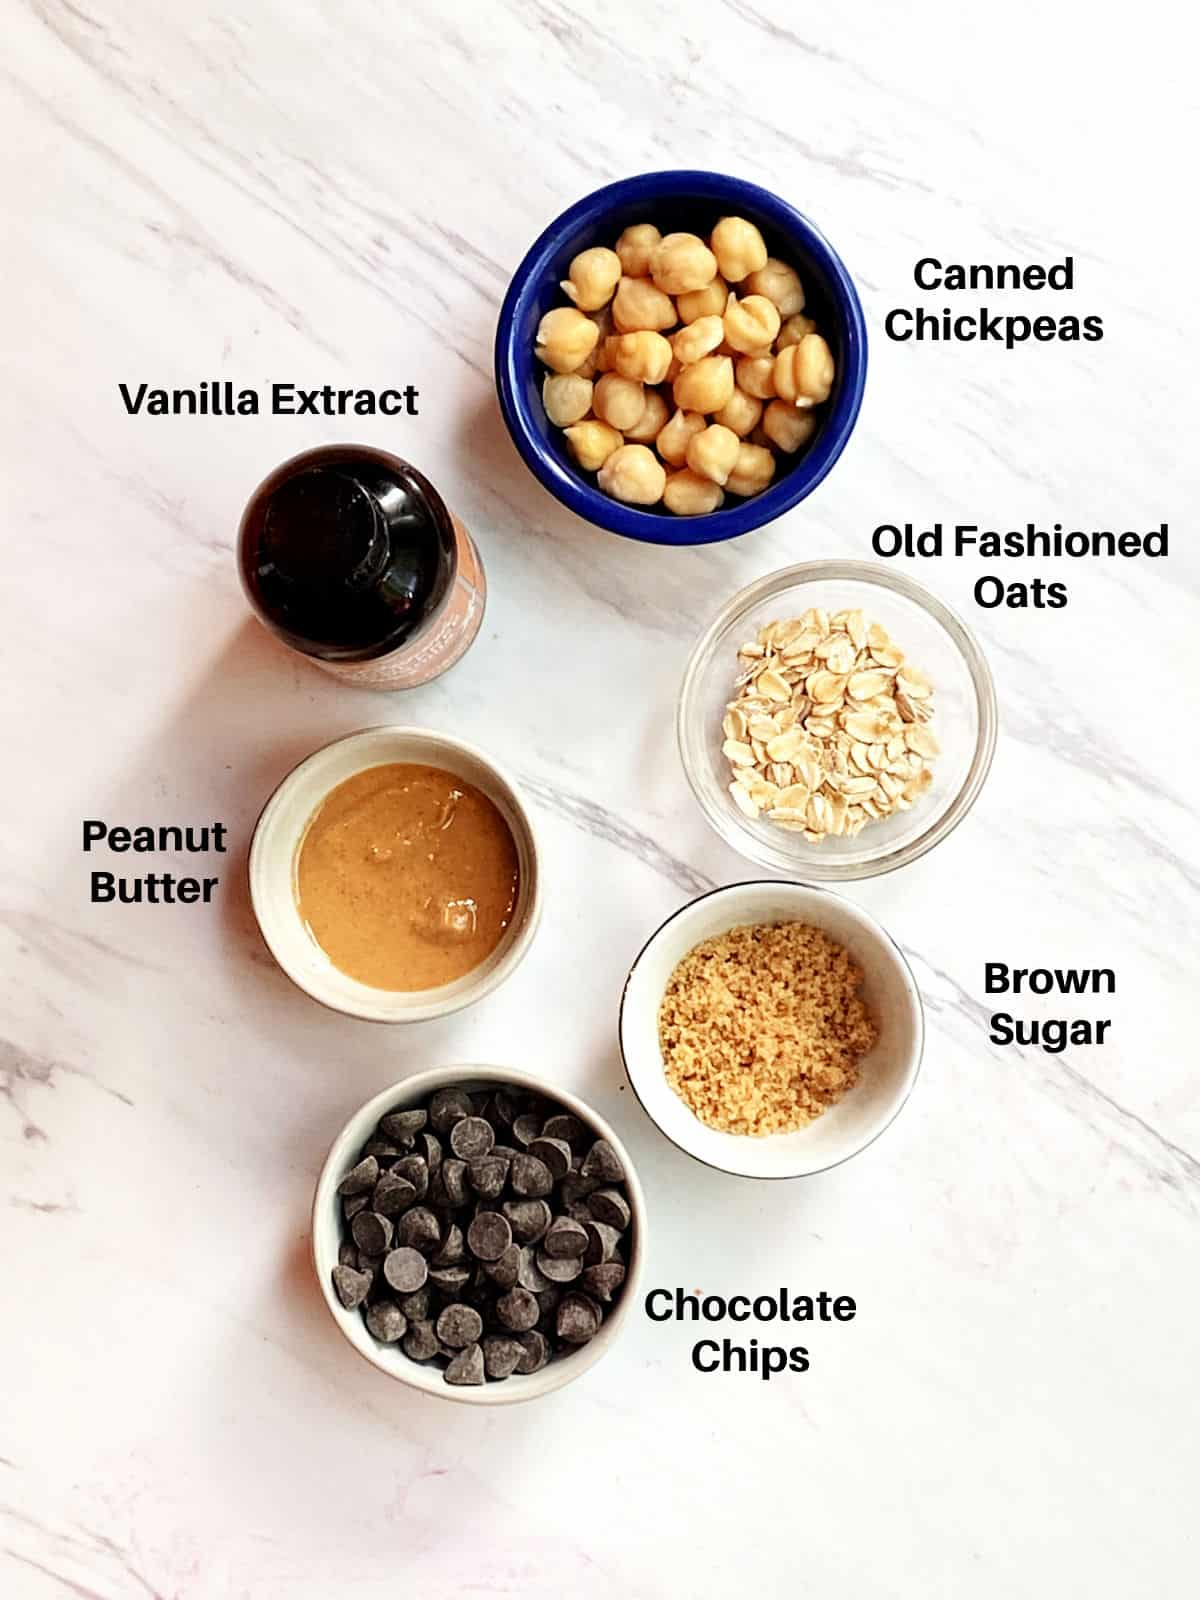 Chickpea cookie dough ingredients labeled.  Chickpeas, oats, peanut butter, vanilla extract, chocolate chips and brown sugar